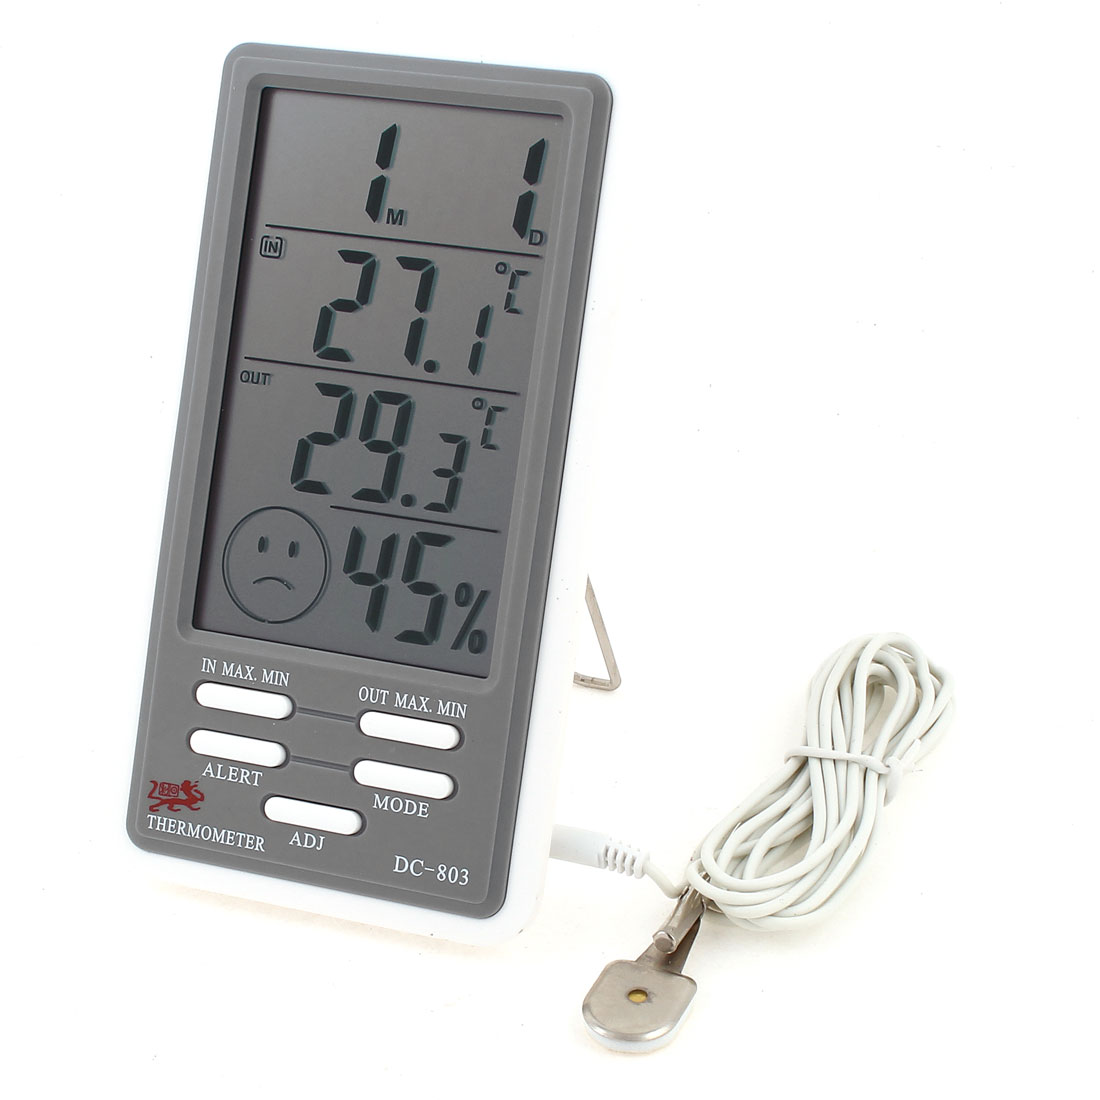 DC803 Battery Powered Metal Stand Indoor Outdoor Digital Thermometer Hygrometer